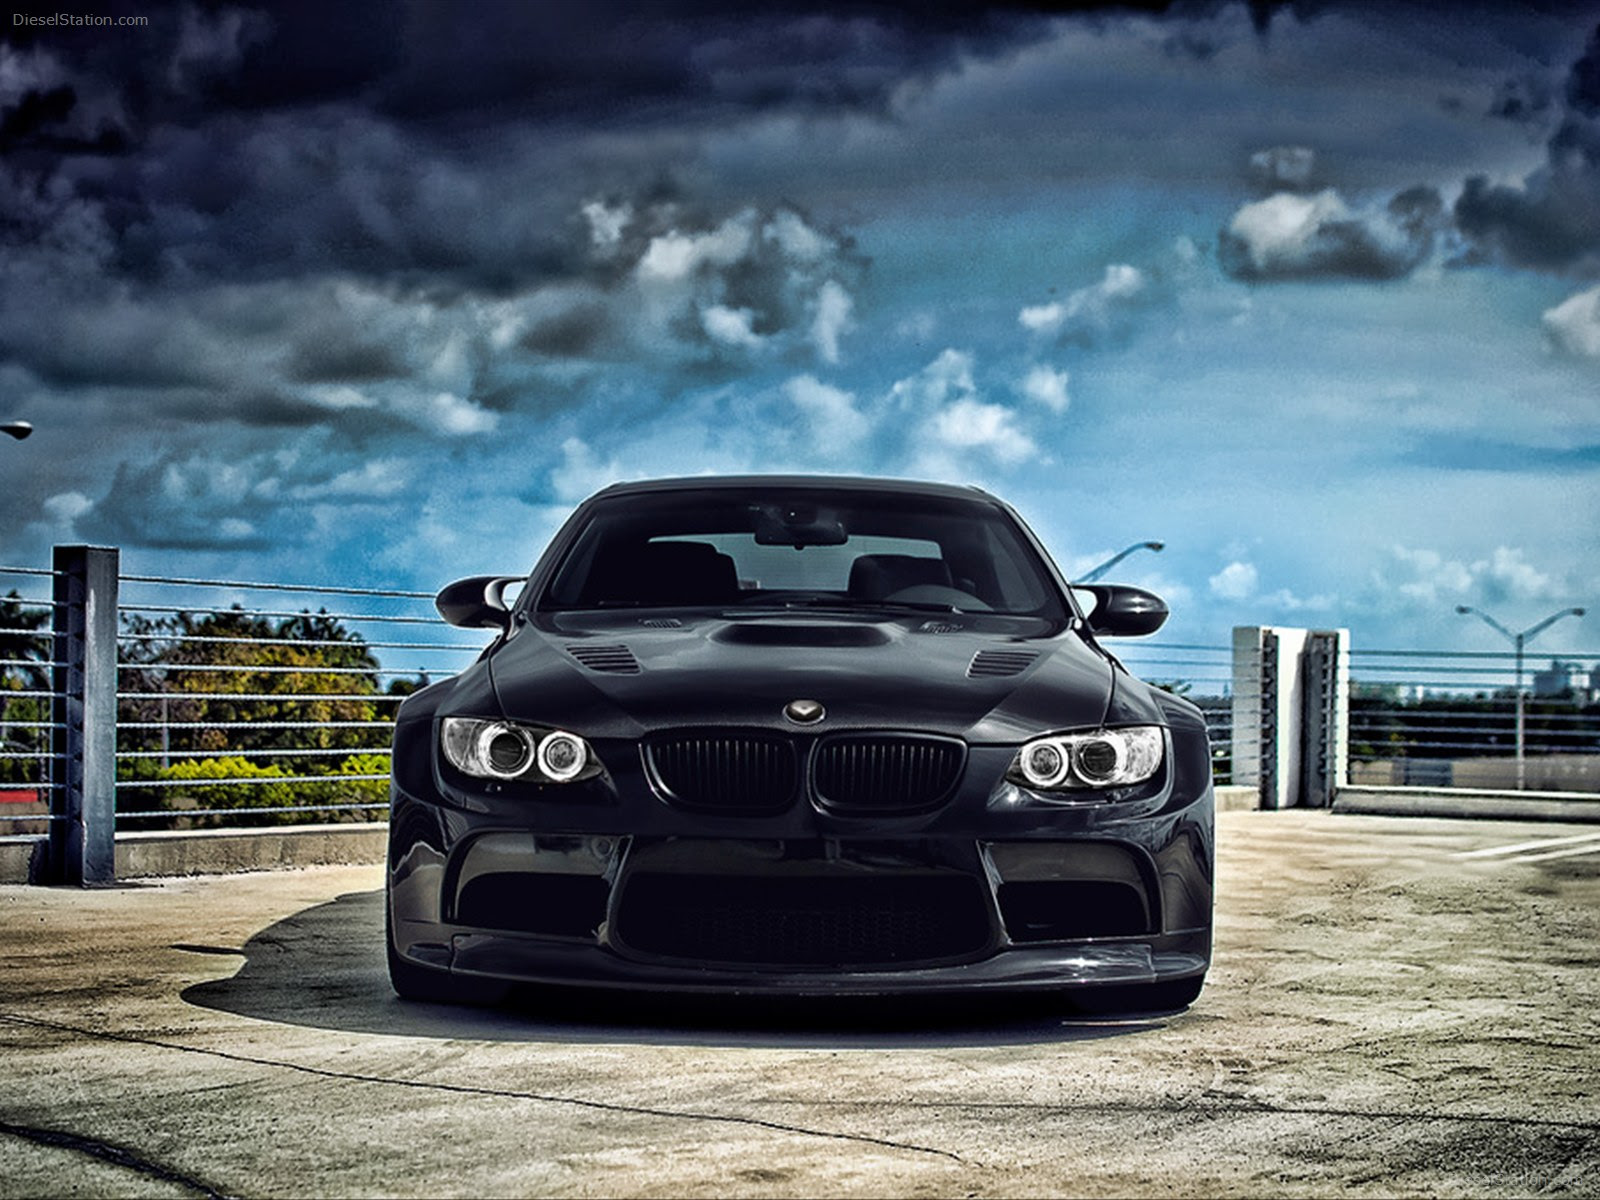 50 HD BMW Wallpapers\/Backgrounds For Free Download